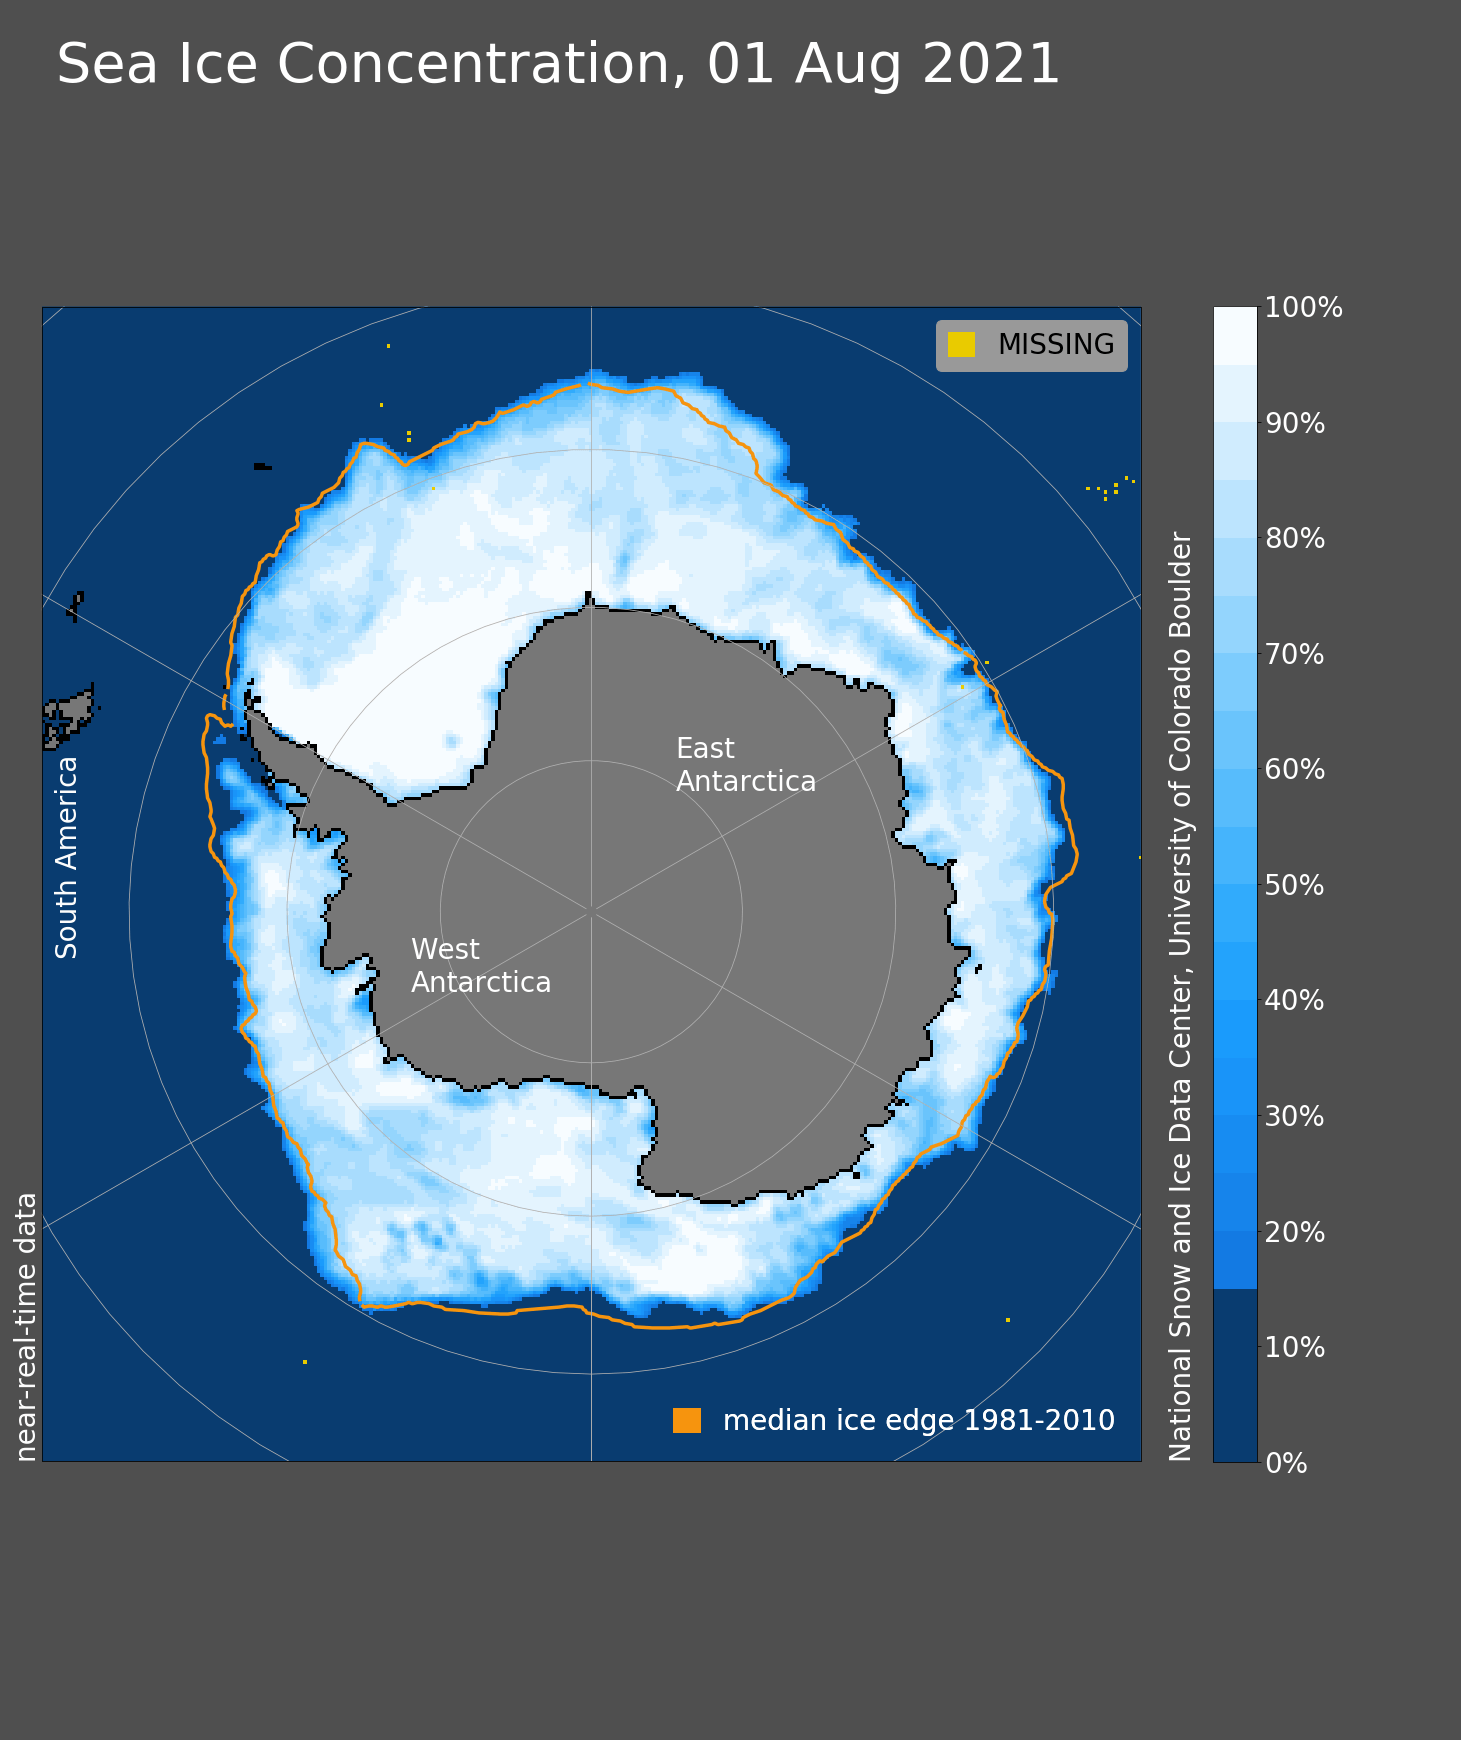 antarctic-sea-ice-concentration-2021-summer-analysis-map